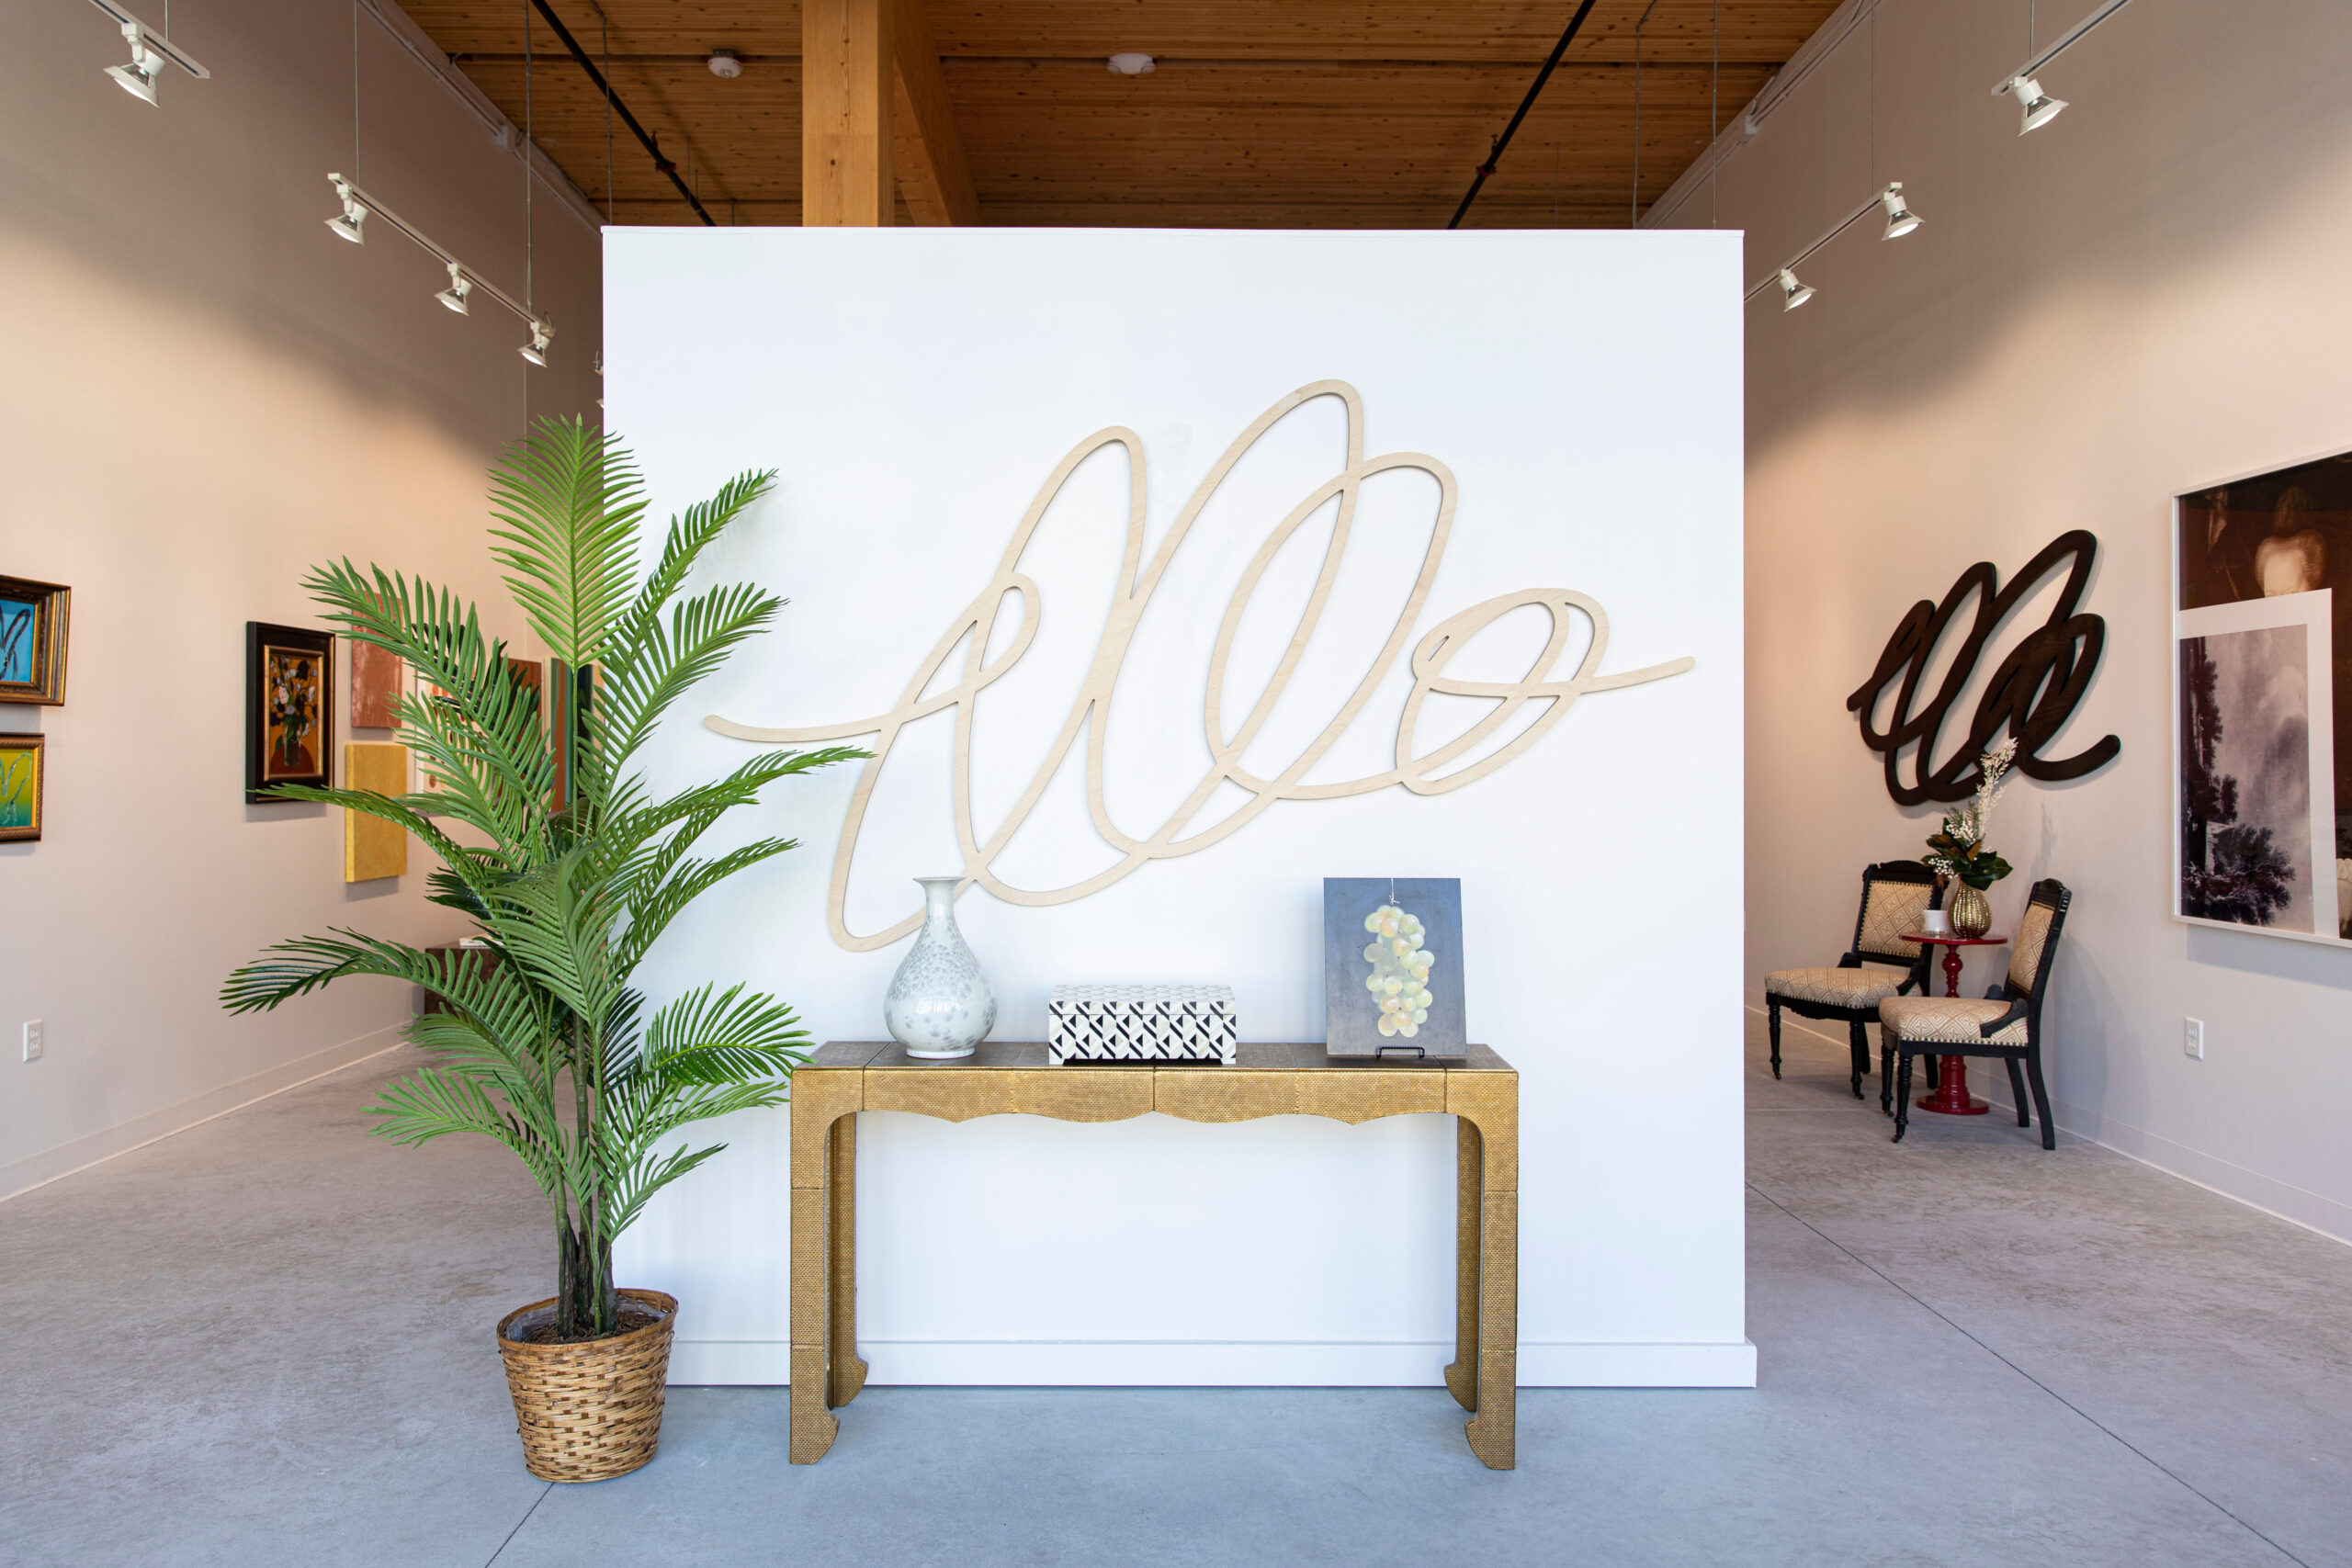 Building an Art Collection You Love